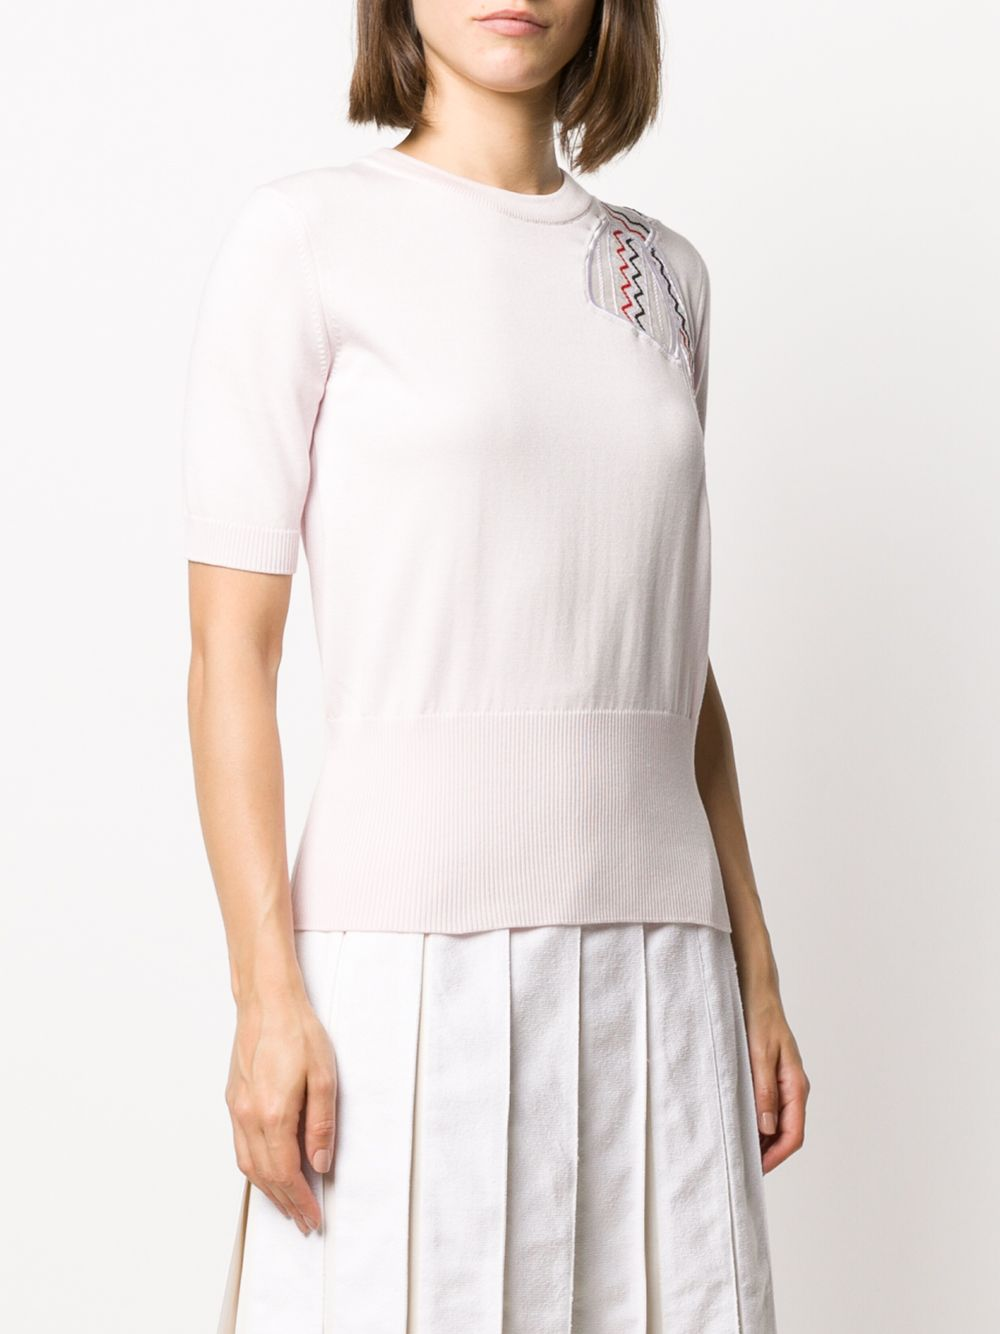 THOM BROWNE WOMEN TROMPE L'OEIL BOW EMBROIDERY APPLIQUE RELAXED FIT CREW NECK SS TEE IN SILK COTTON